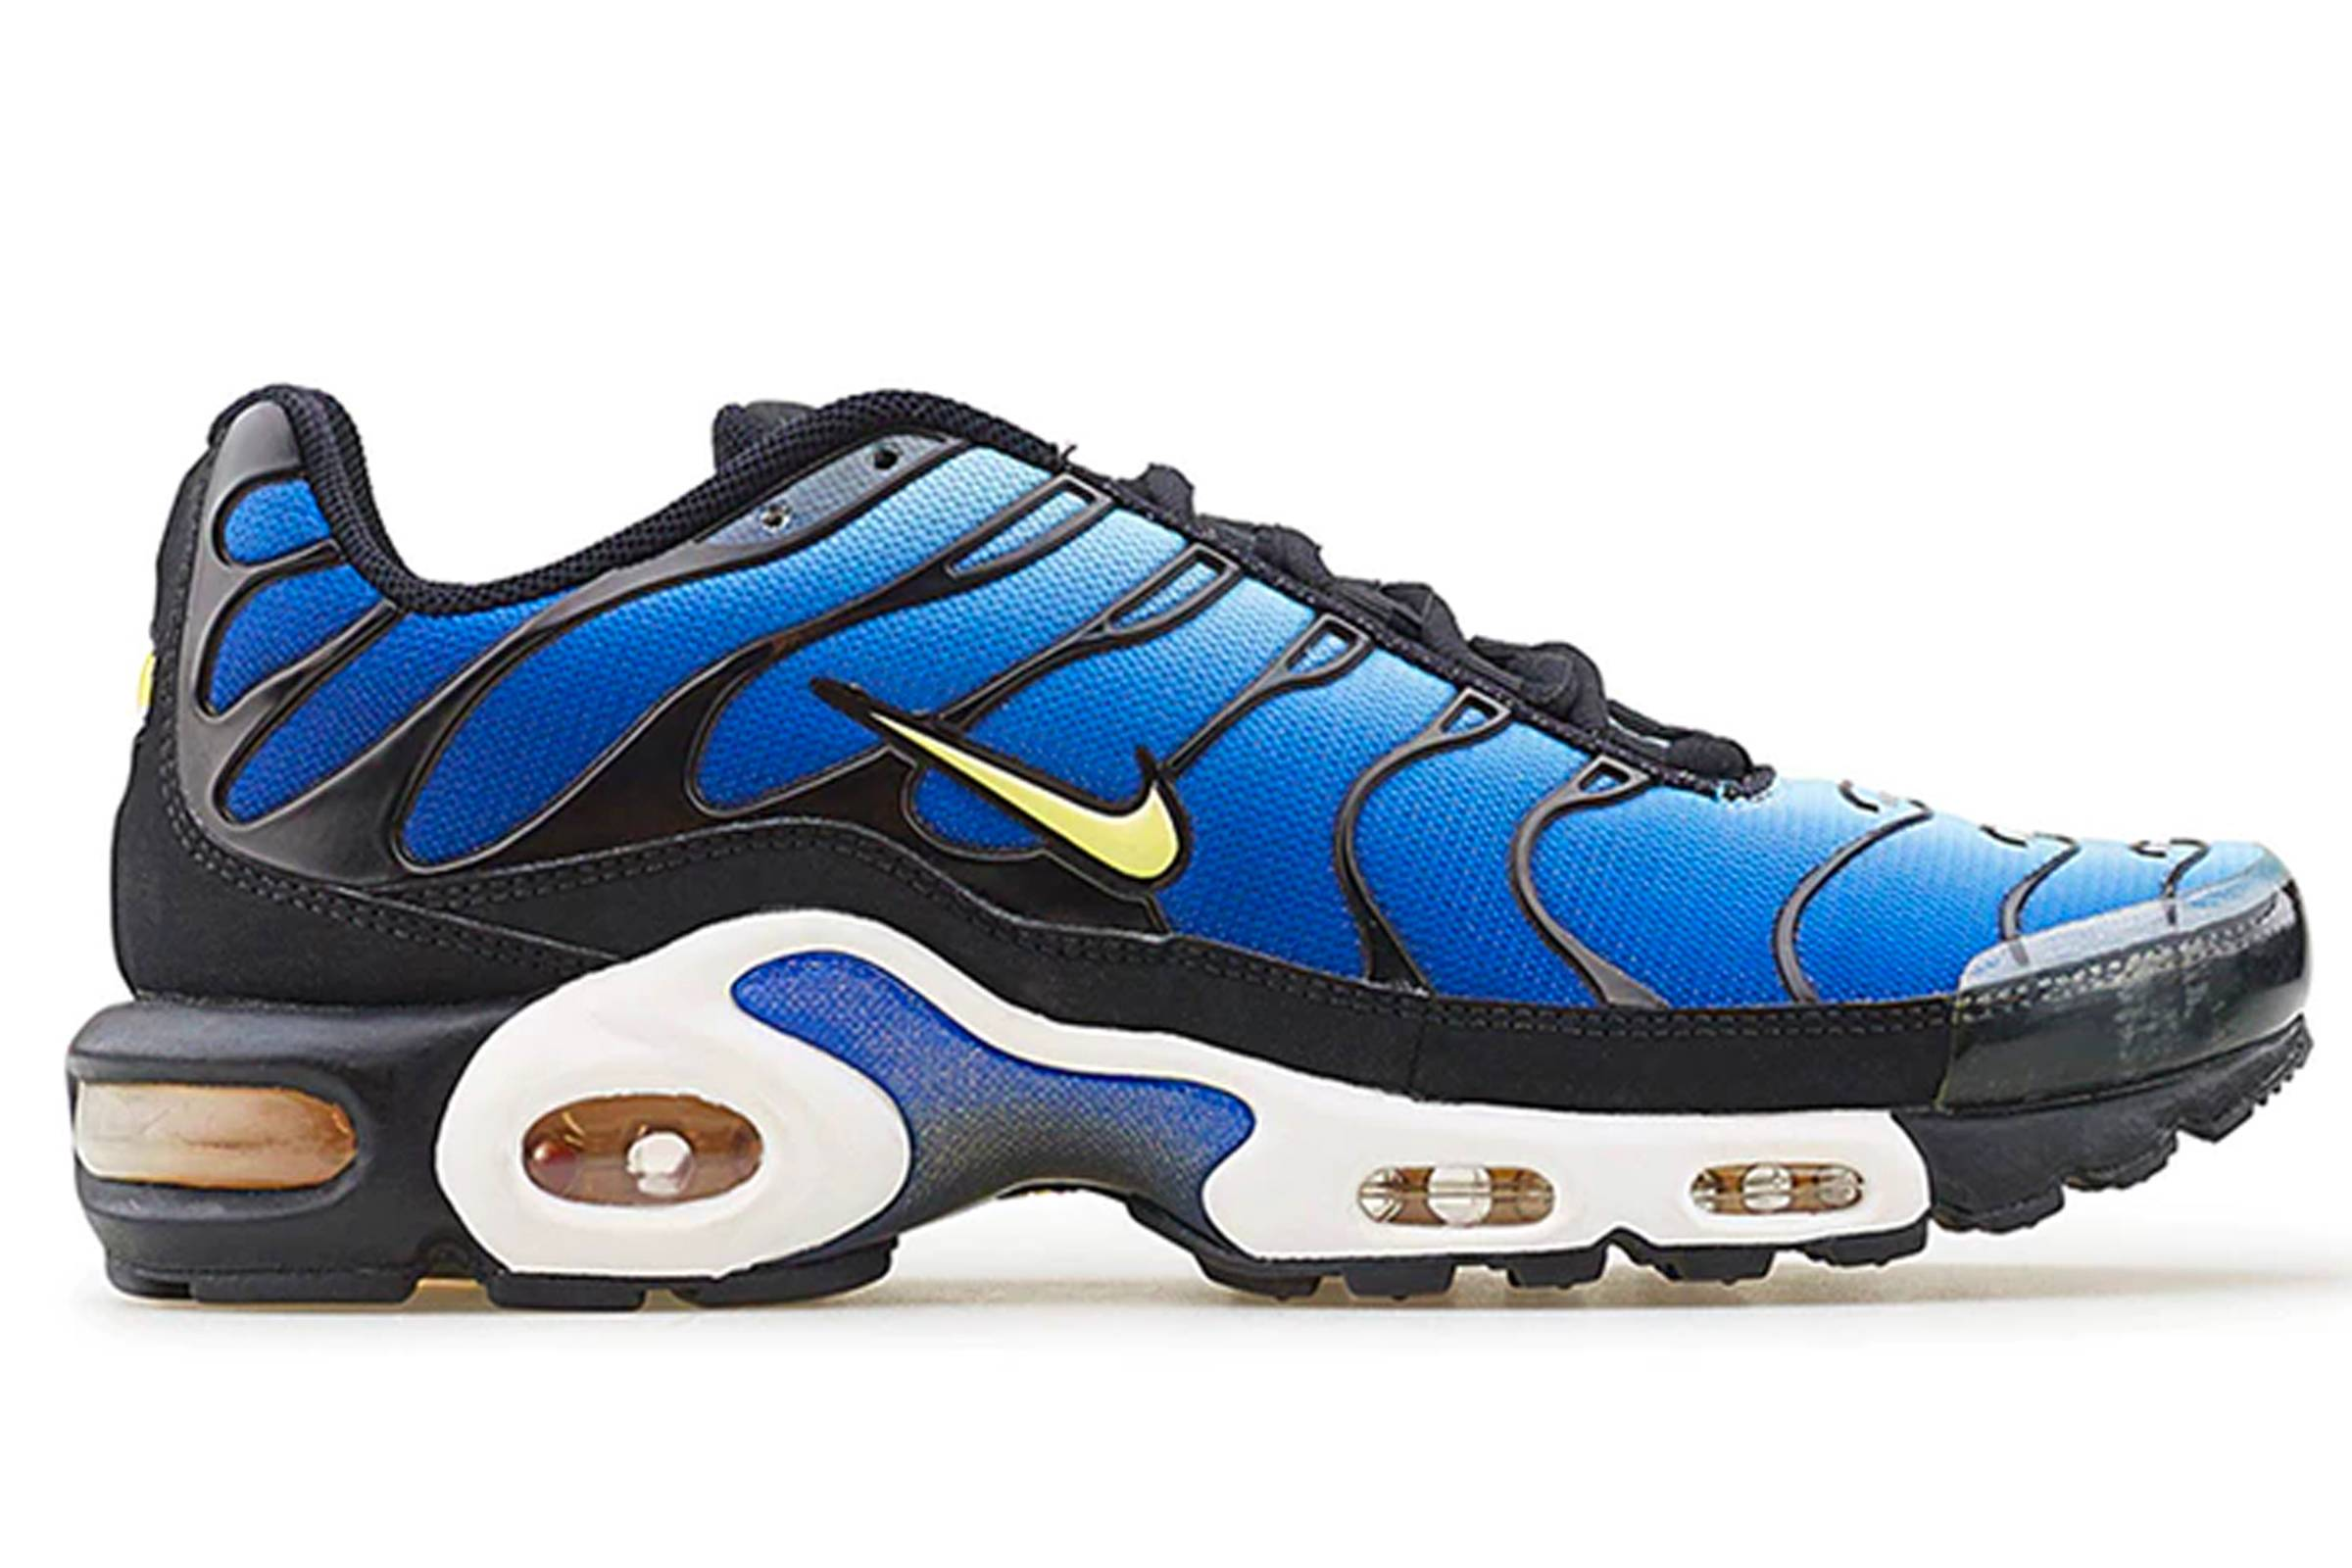 52b5c47043 Tuned Up: A History of the Air Max Plus - Air Max Plus History | Grailed